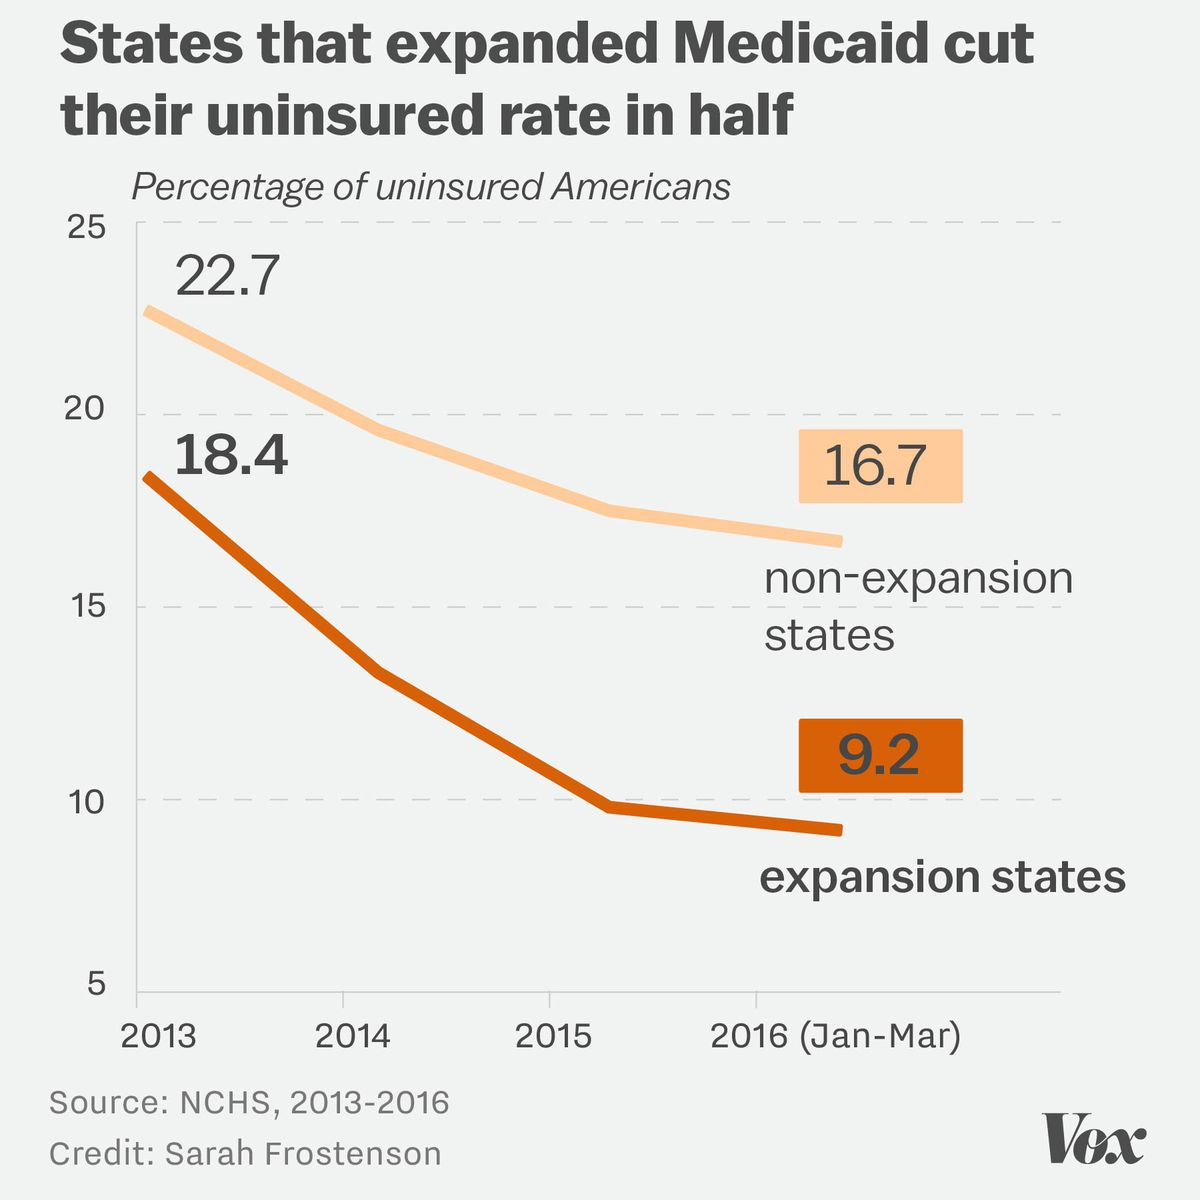 Chart showing that states that expanded Medicaid have fewer uninsured people